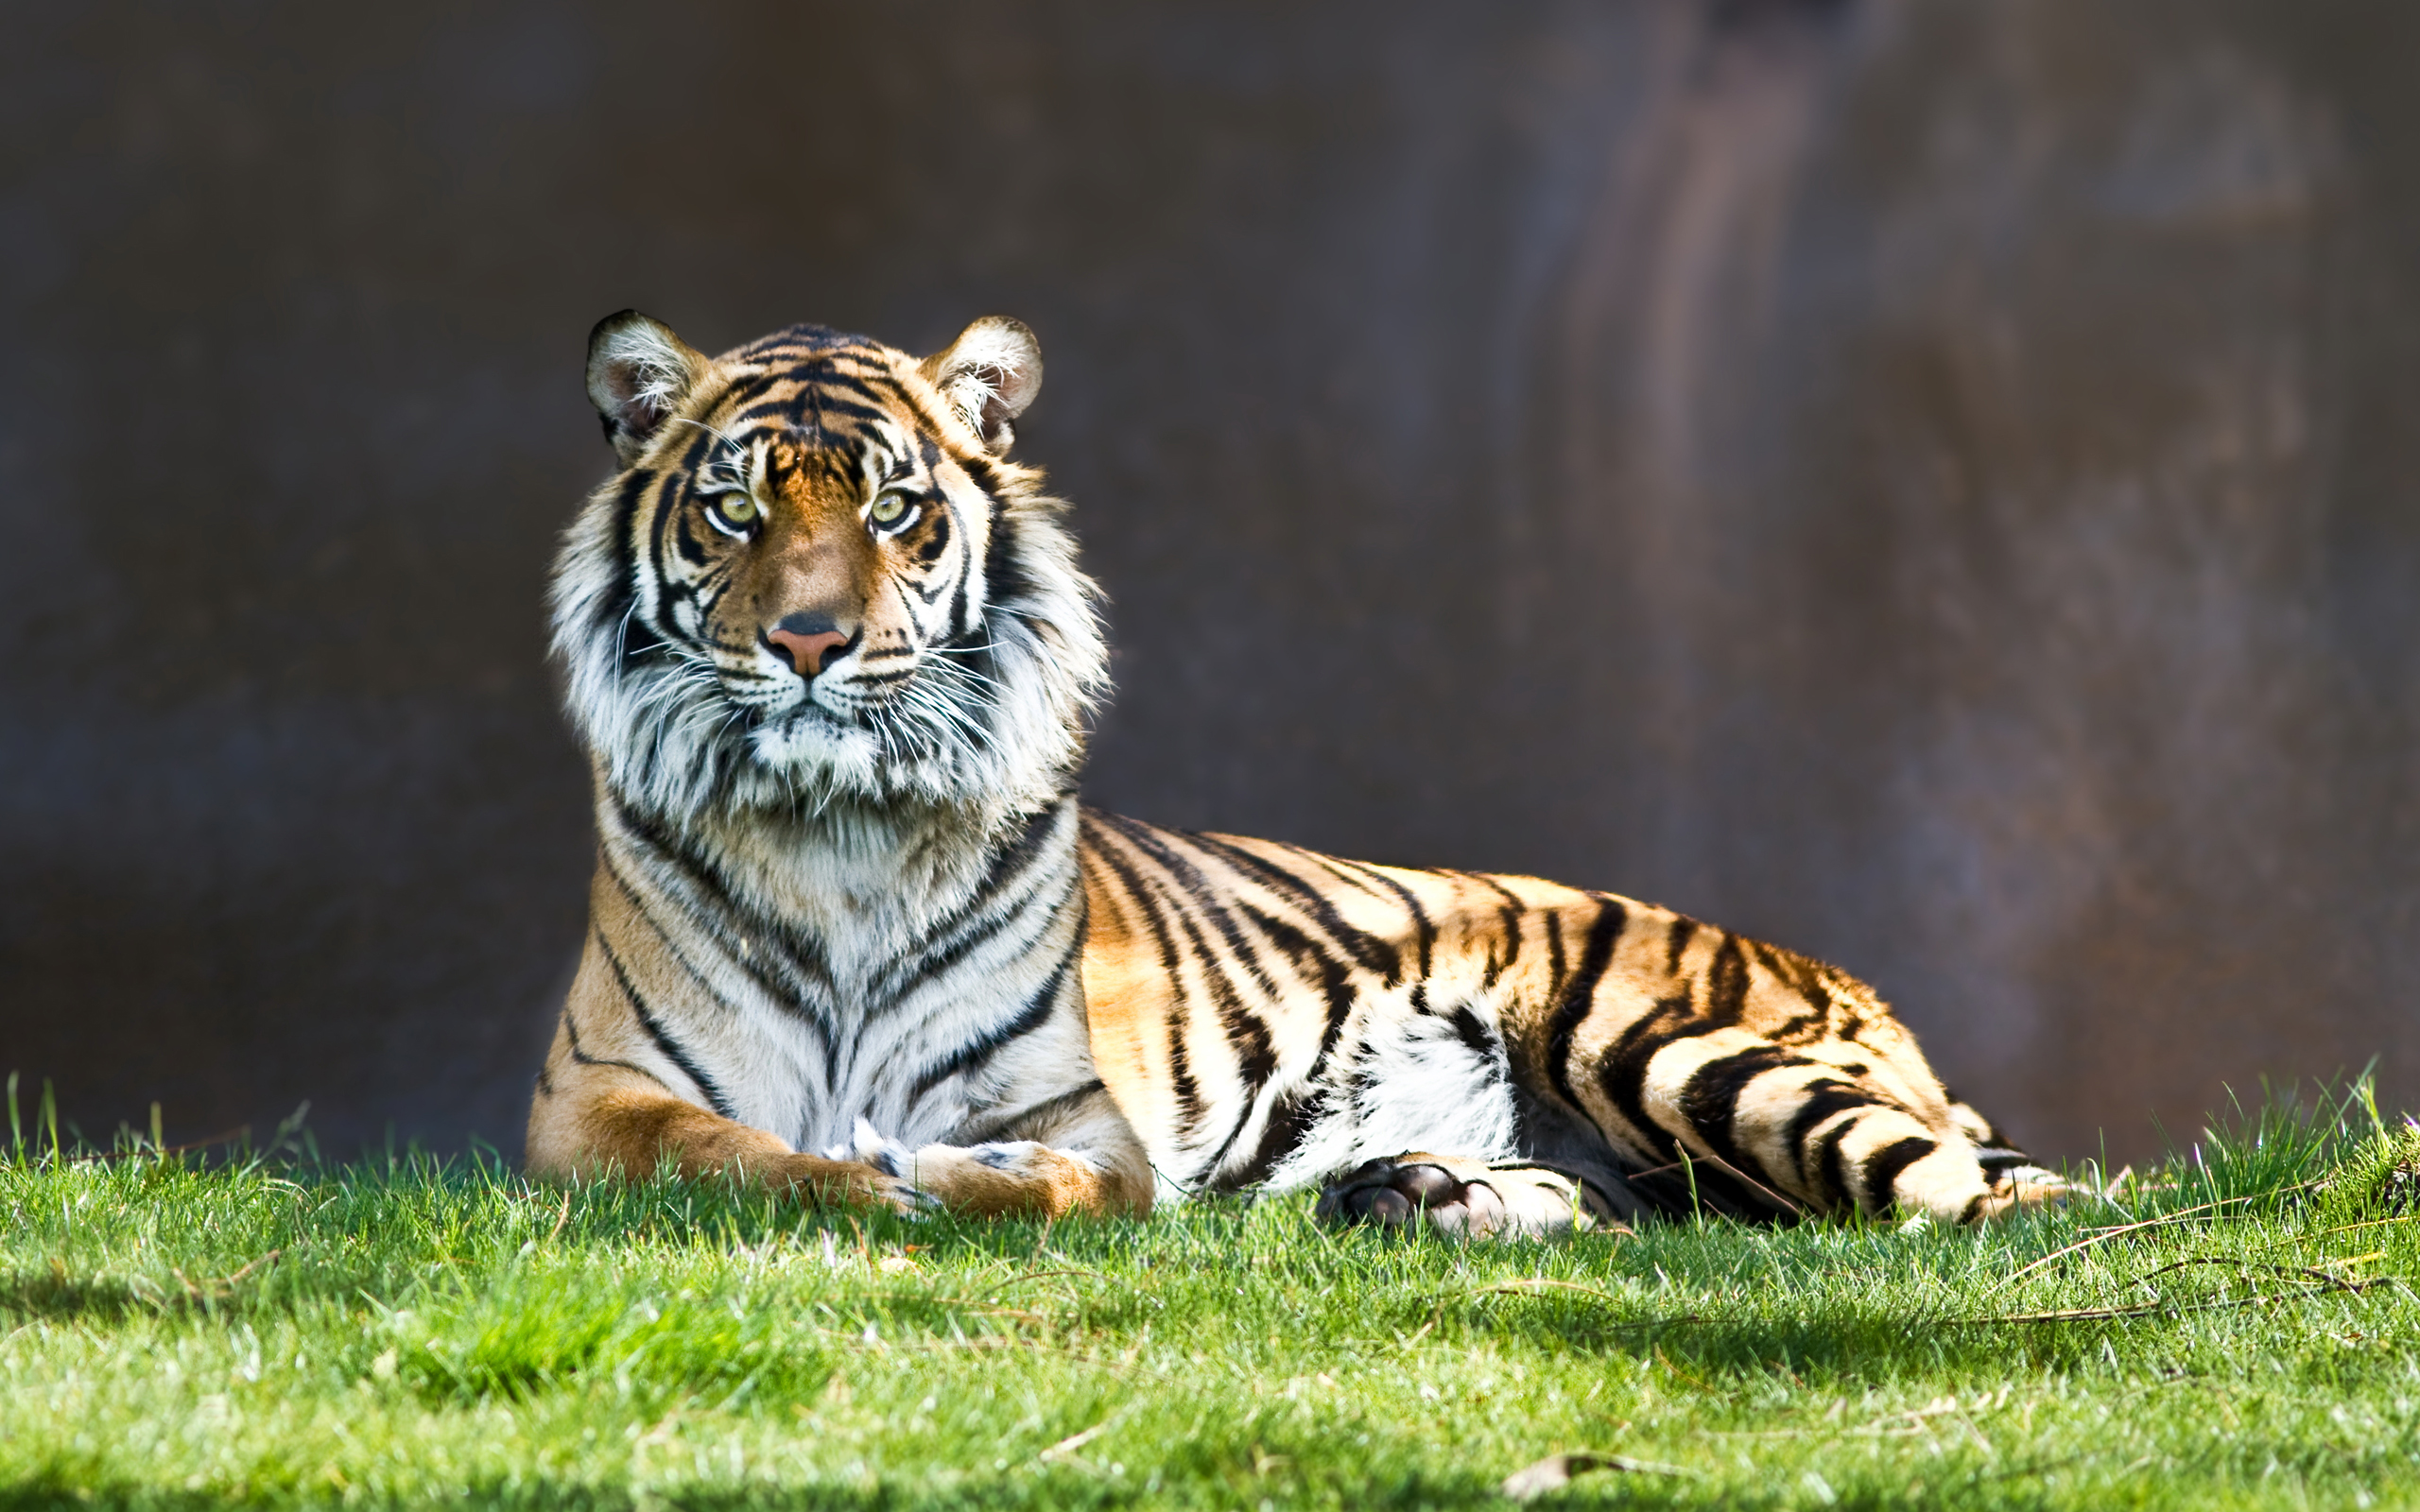 This picture shows a tiger staring into the distance under the